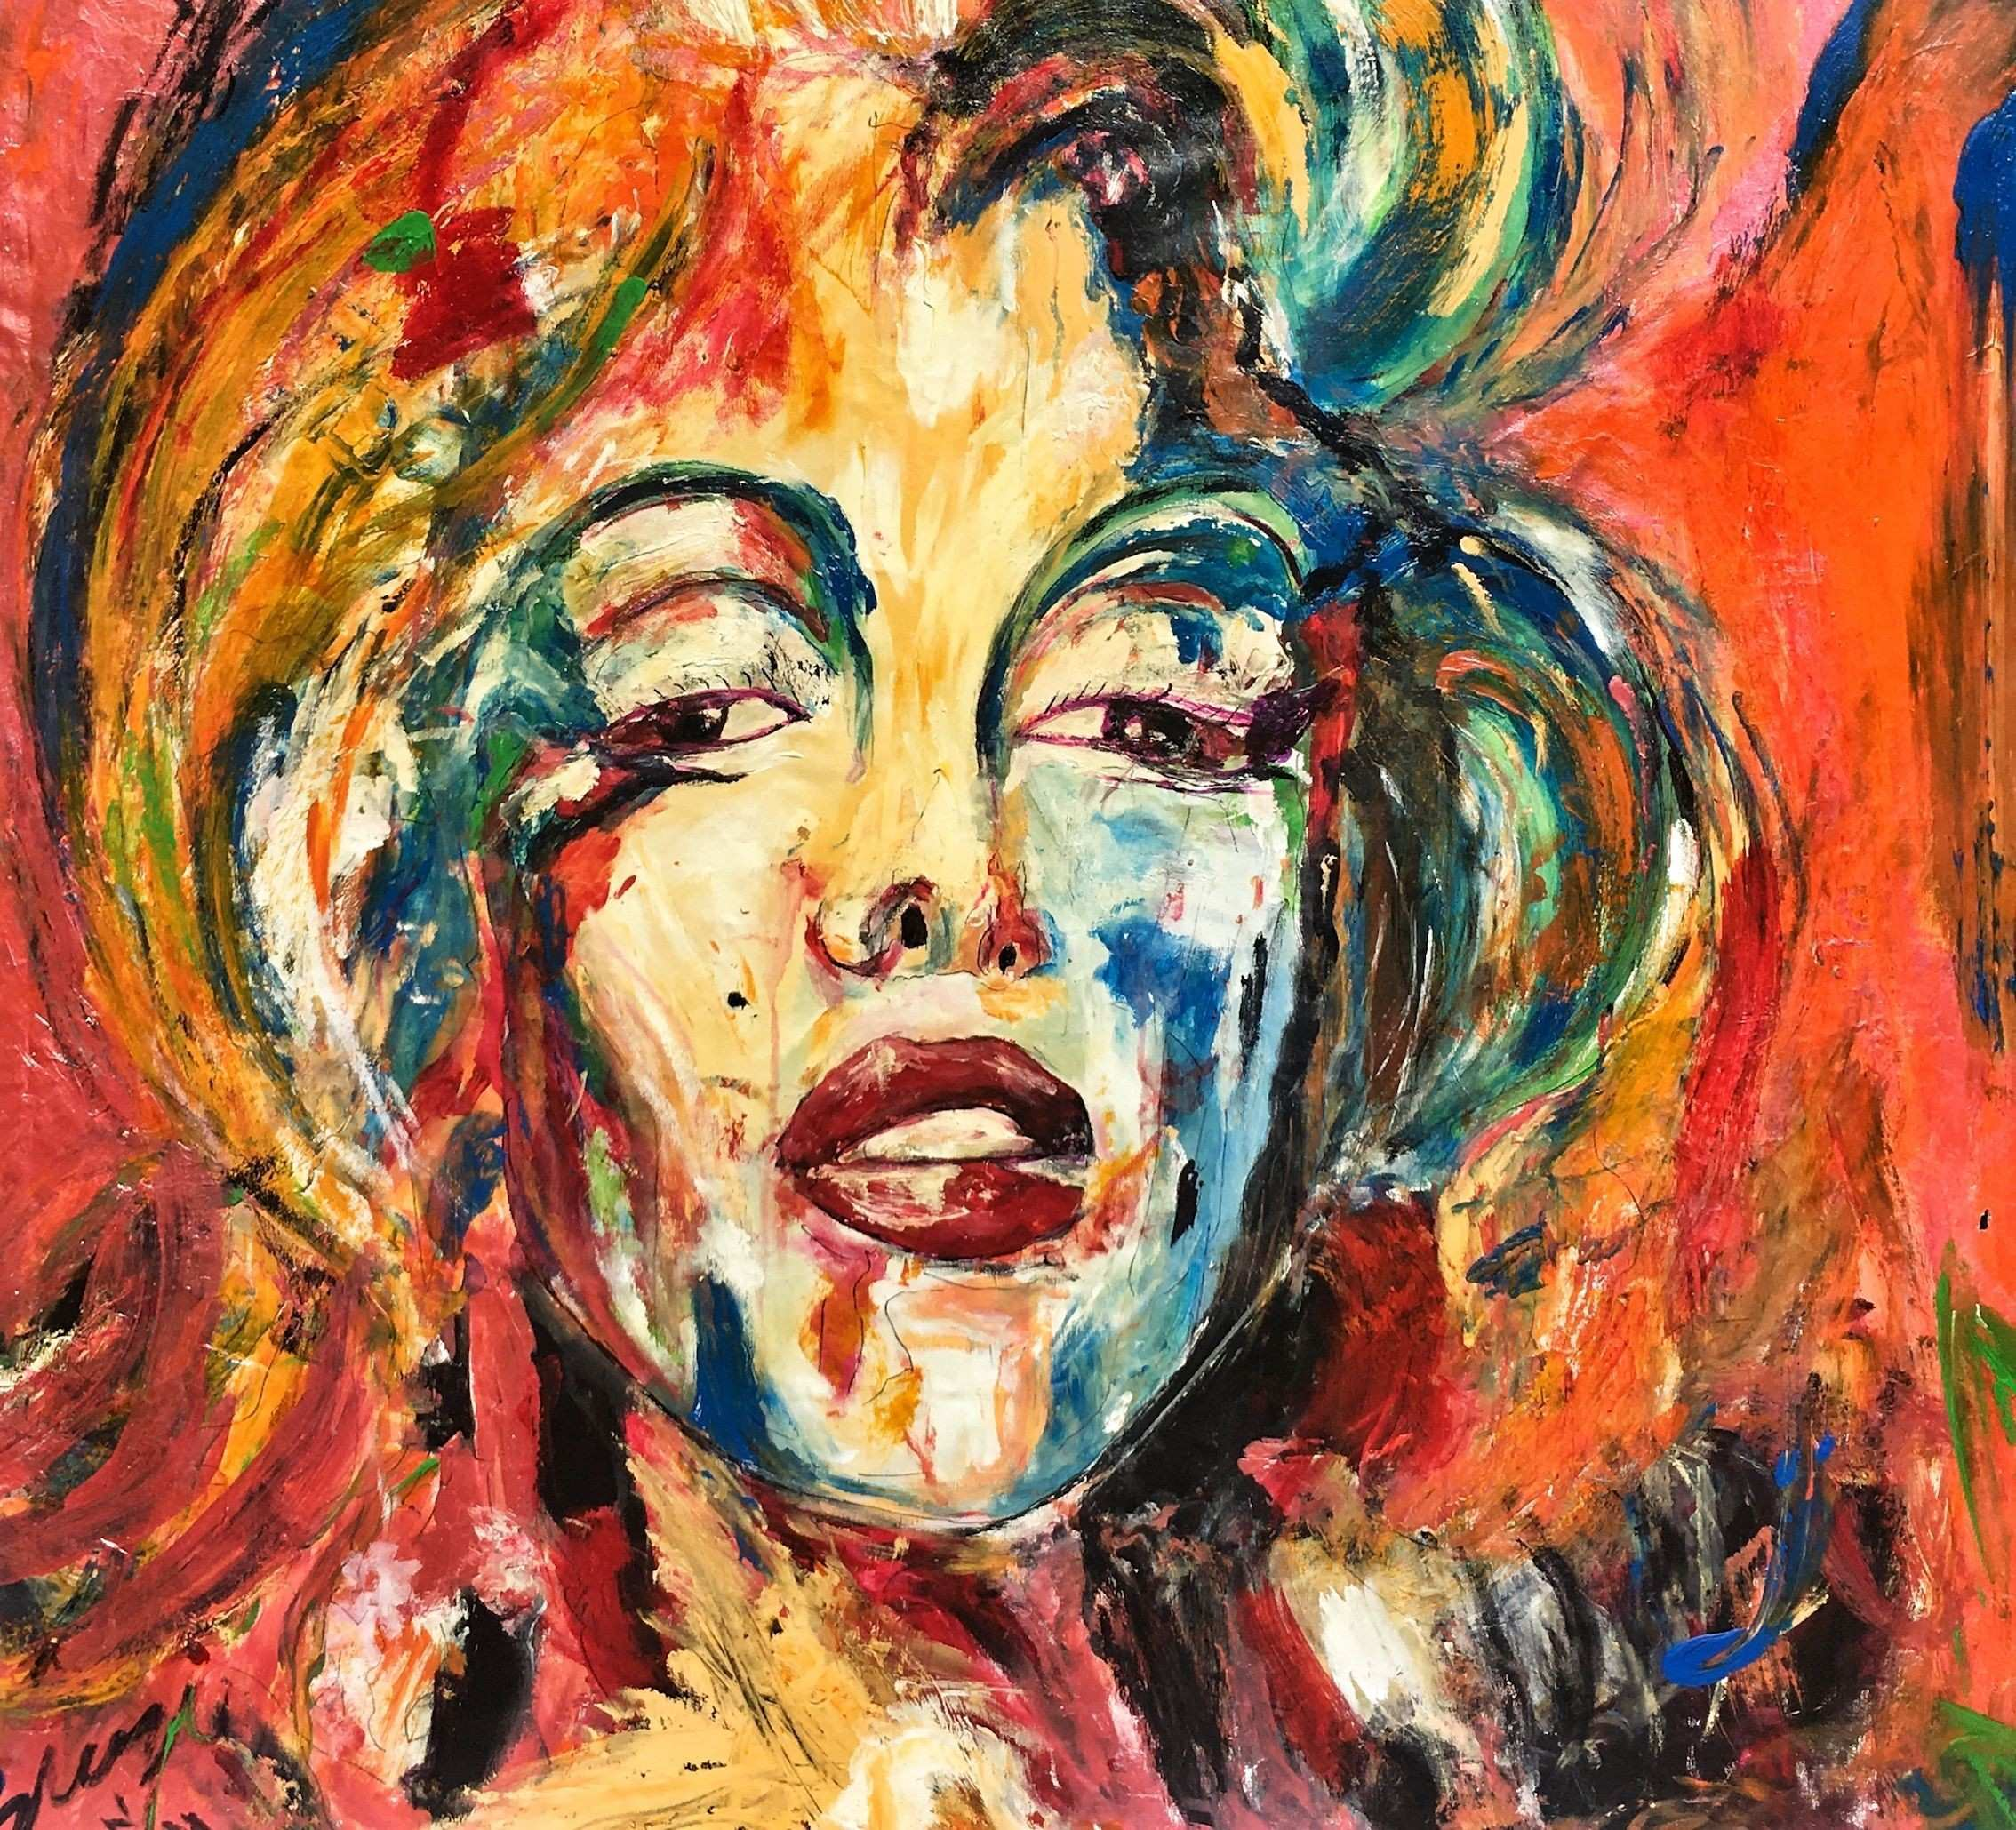 Marilyn Monroe the burst of colors and expression Portrait